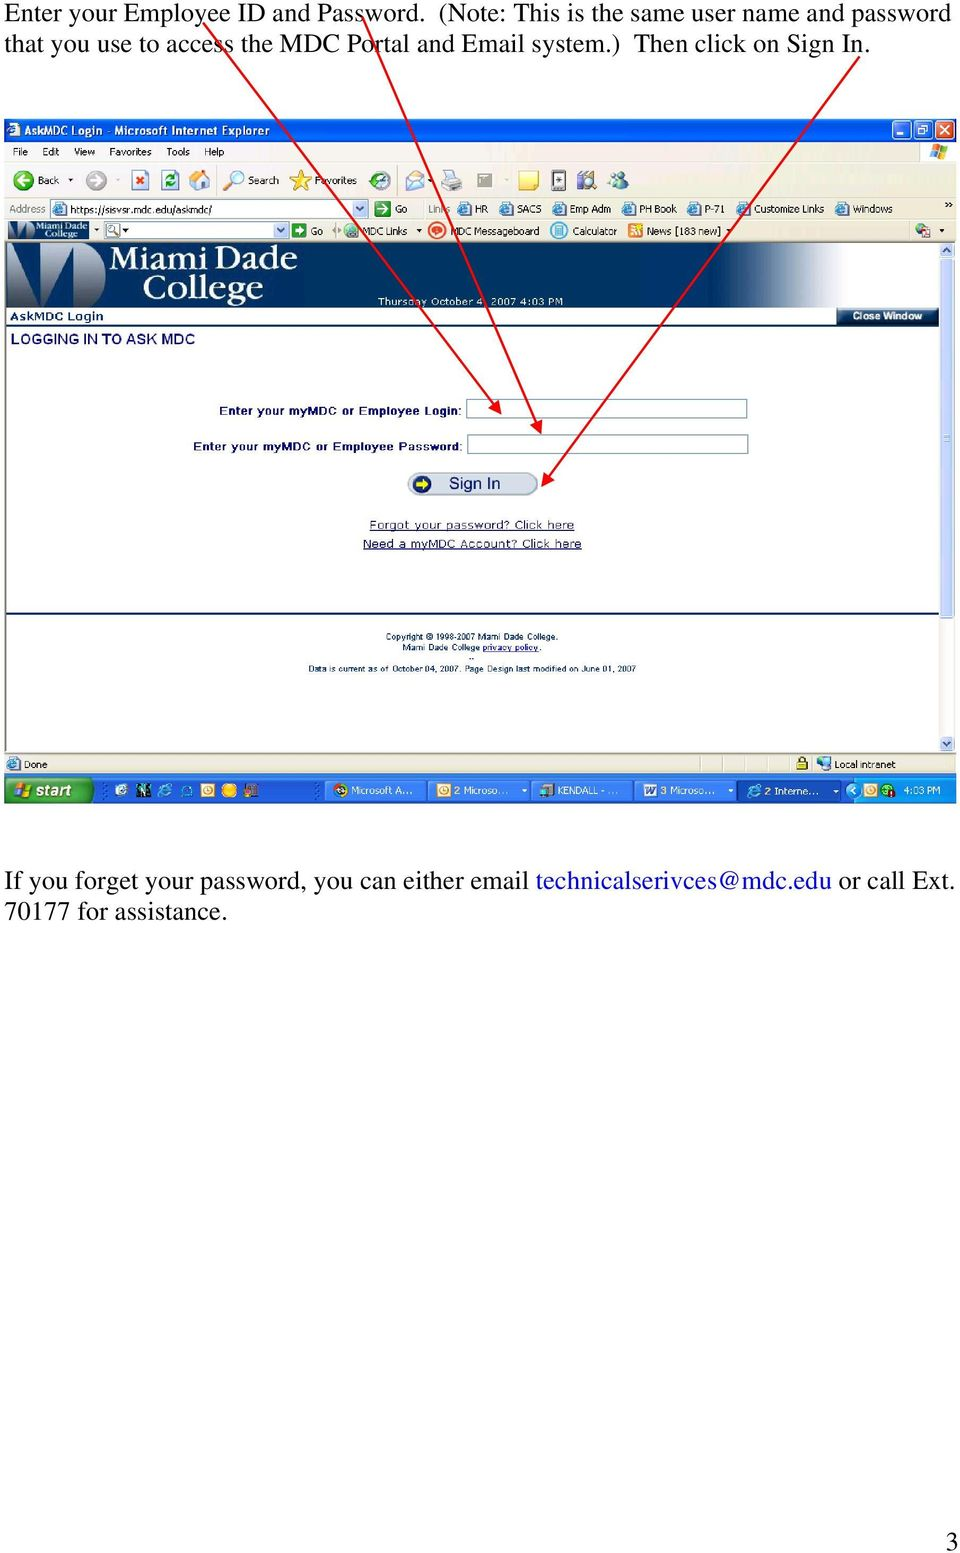 access the MDC Portal and Email system.) Then click on Sign In.